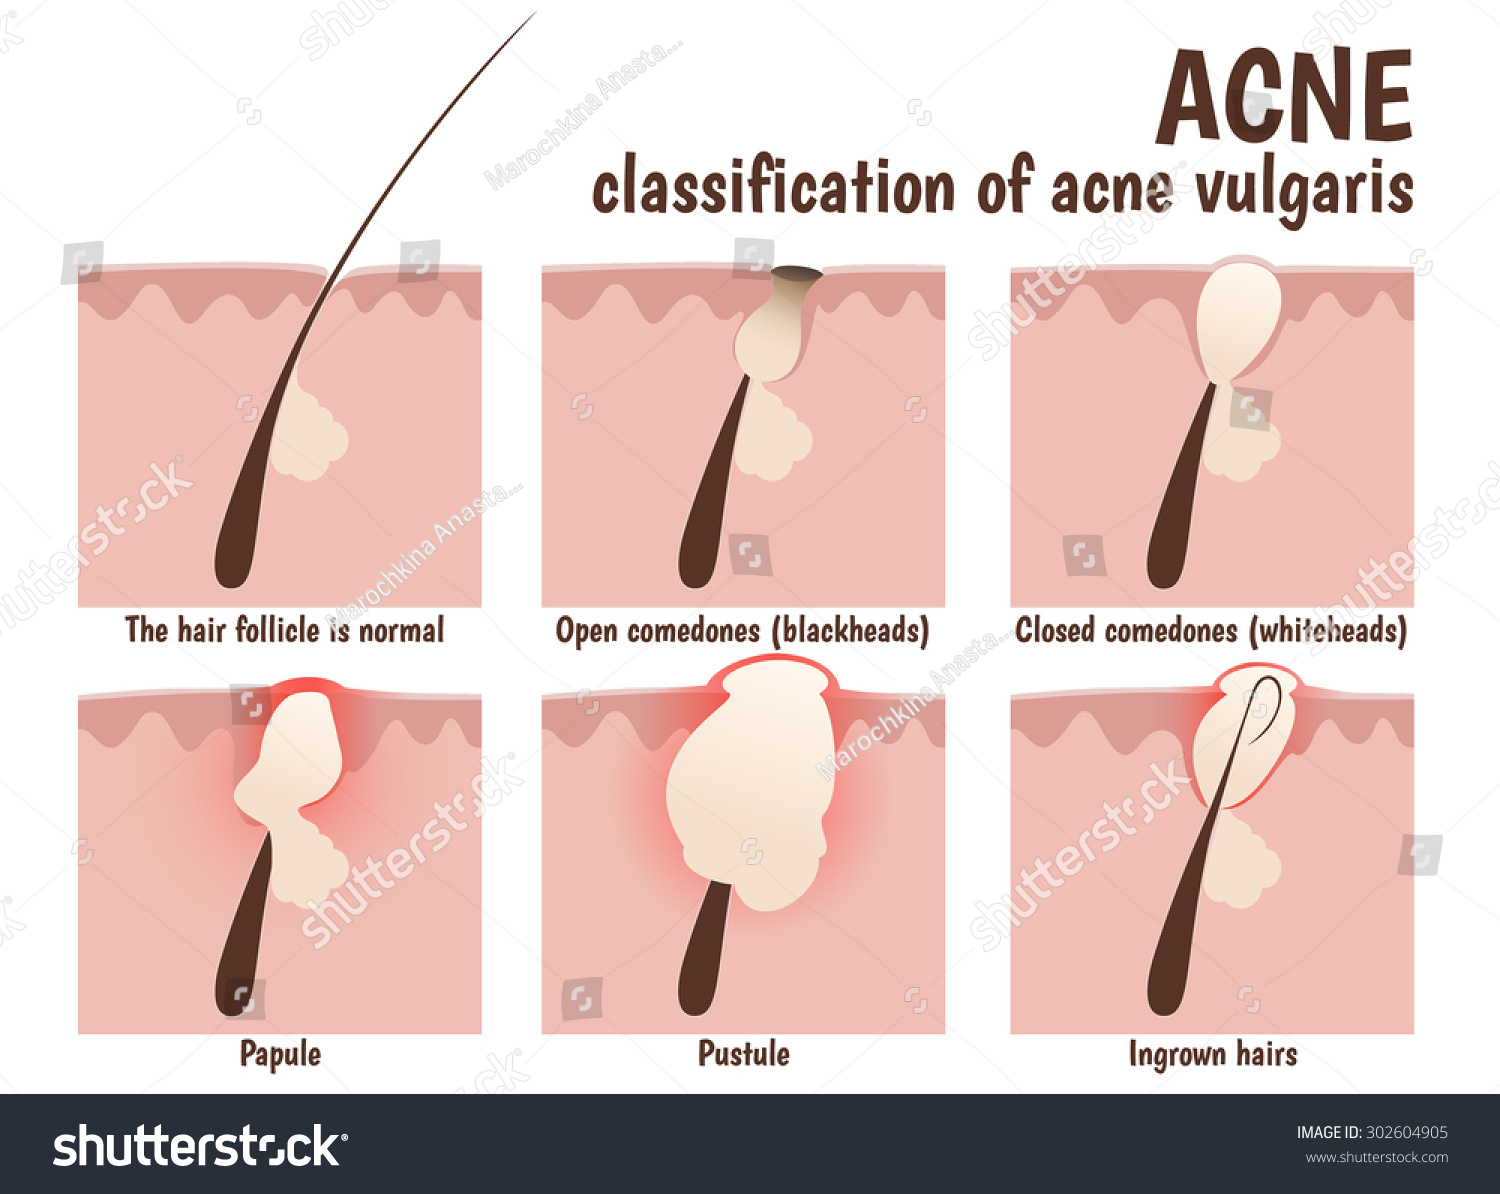 Structure Of The Hair Follicle Problem Skin With Pustules